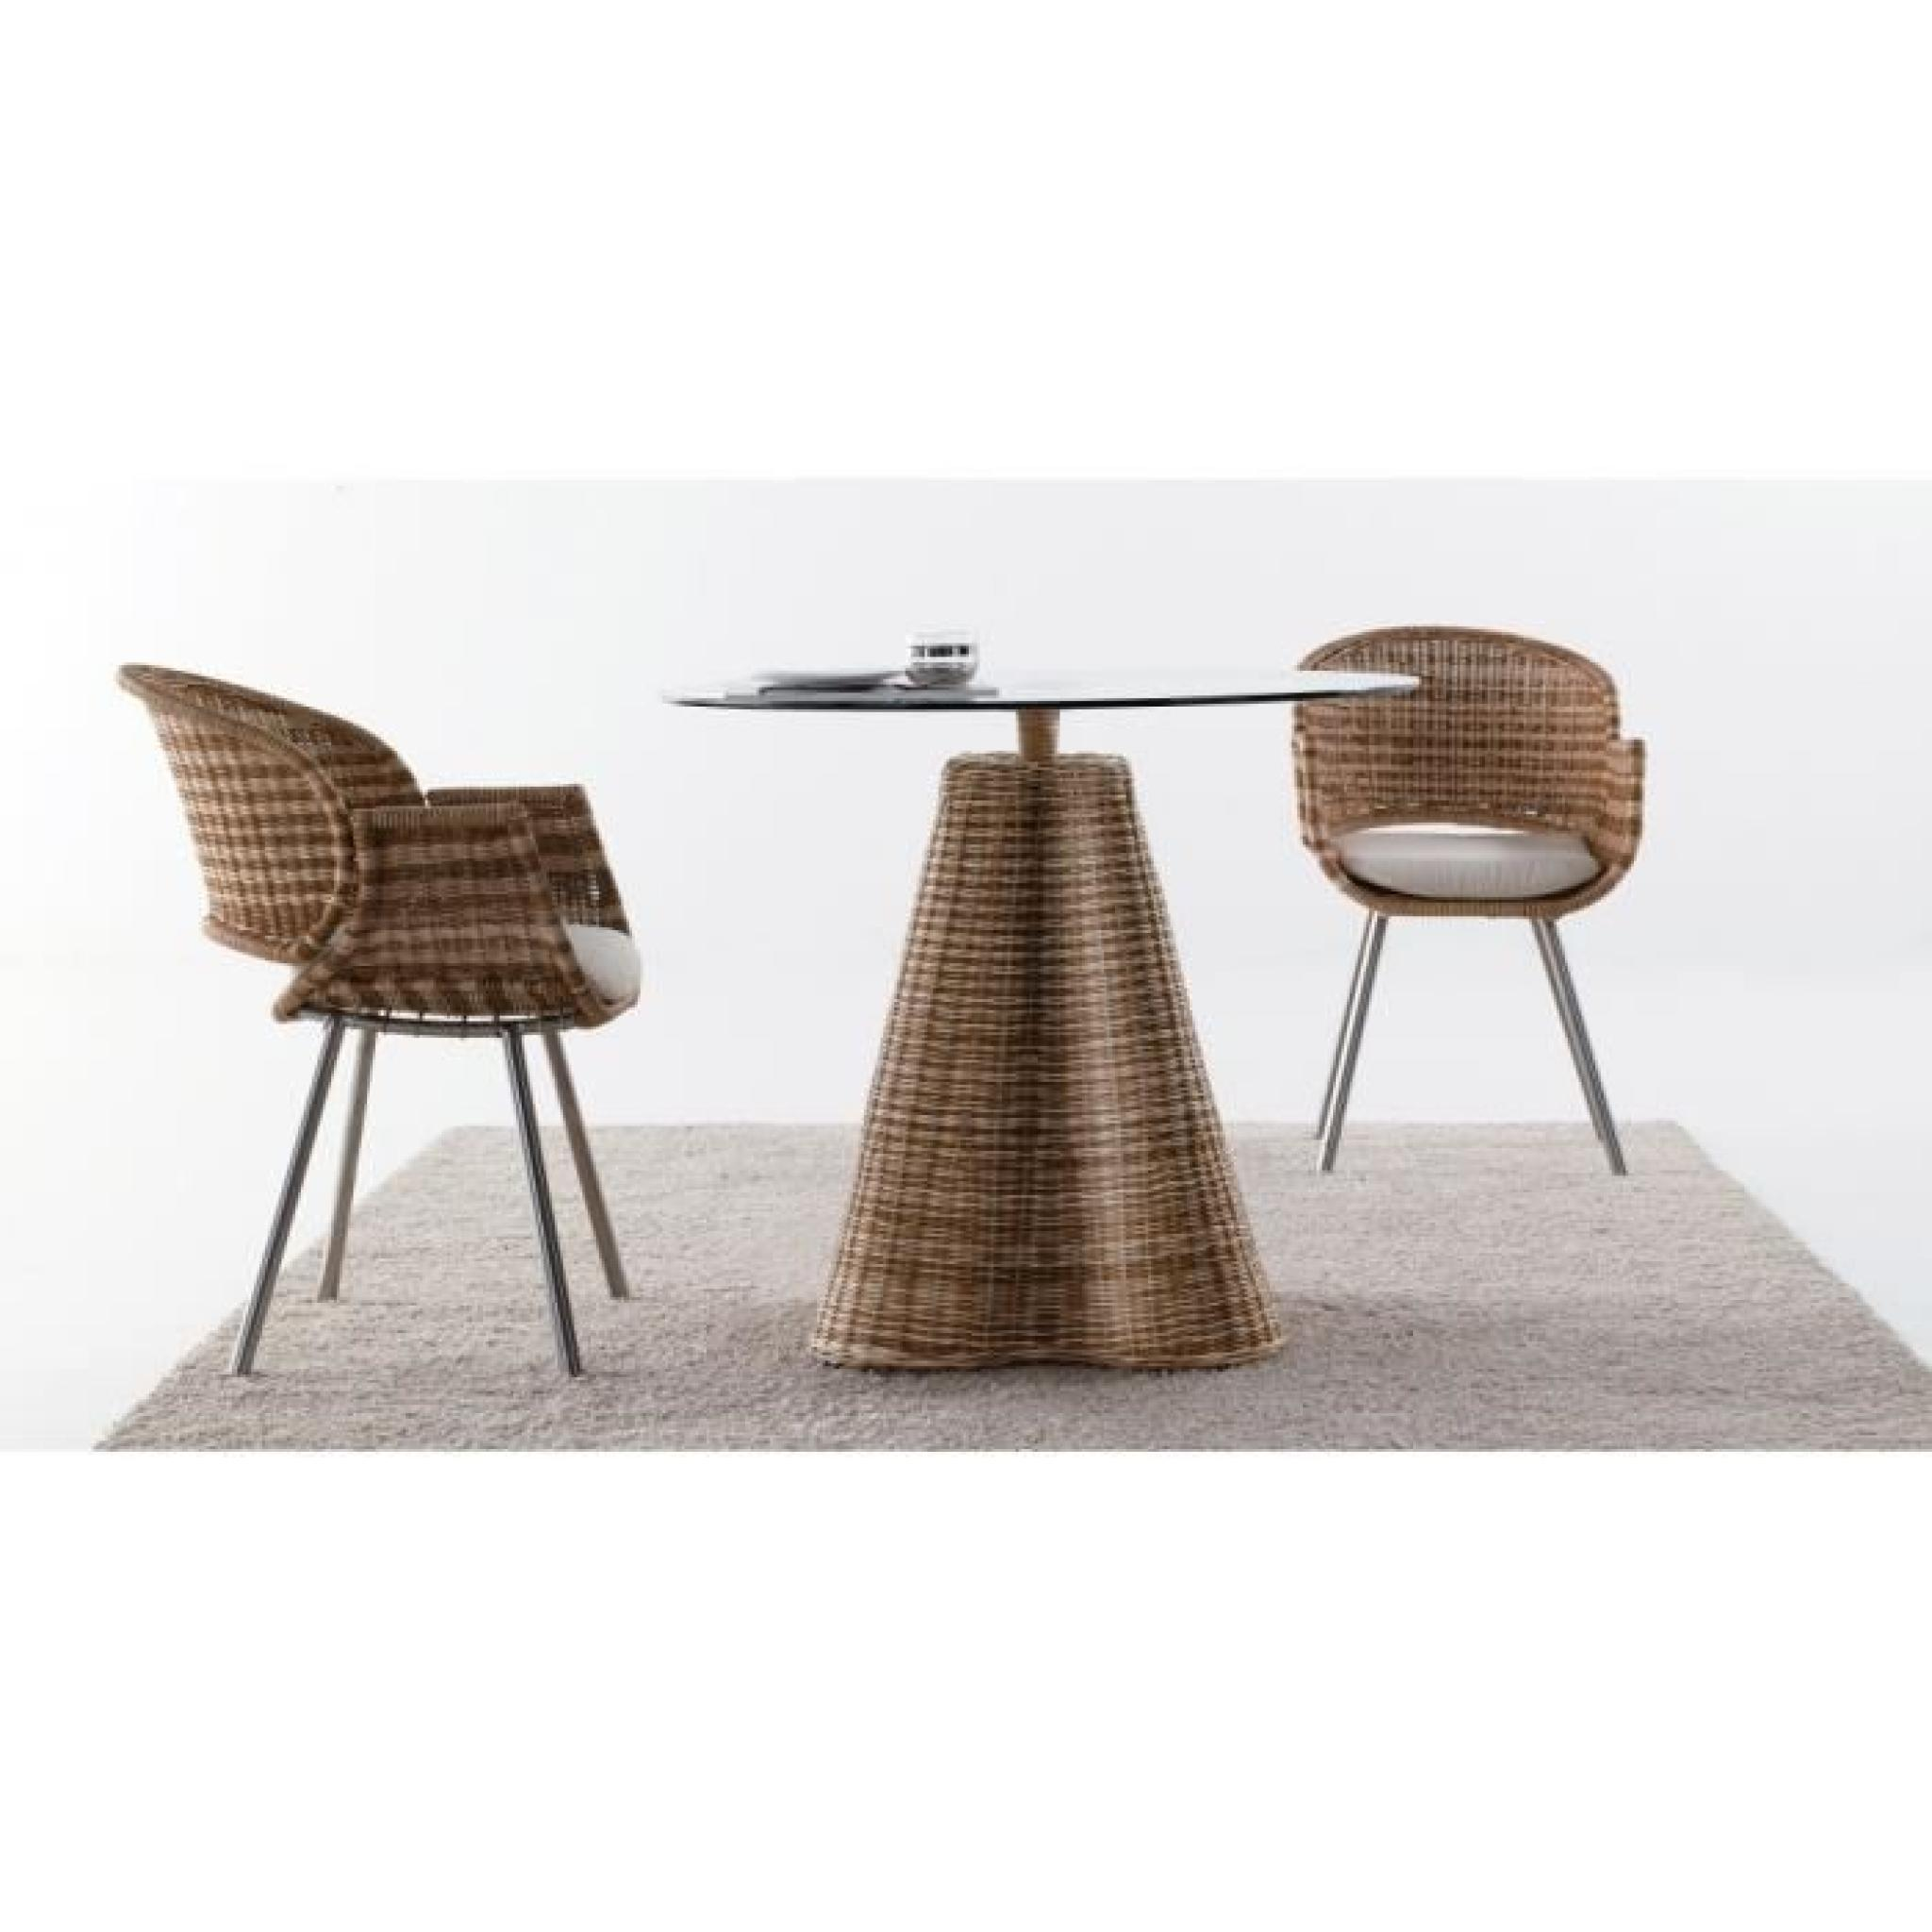 table ronde rotin naturel bicolore plateau verre achat vente table salle a manger pas cher. Black Bedroom Furniture Sets. Home Design Ideas